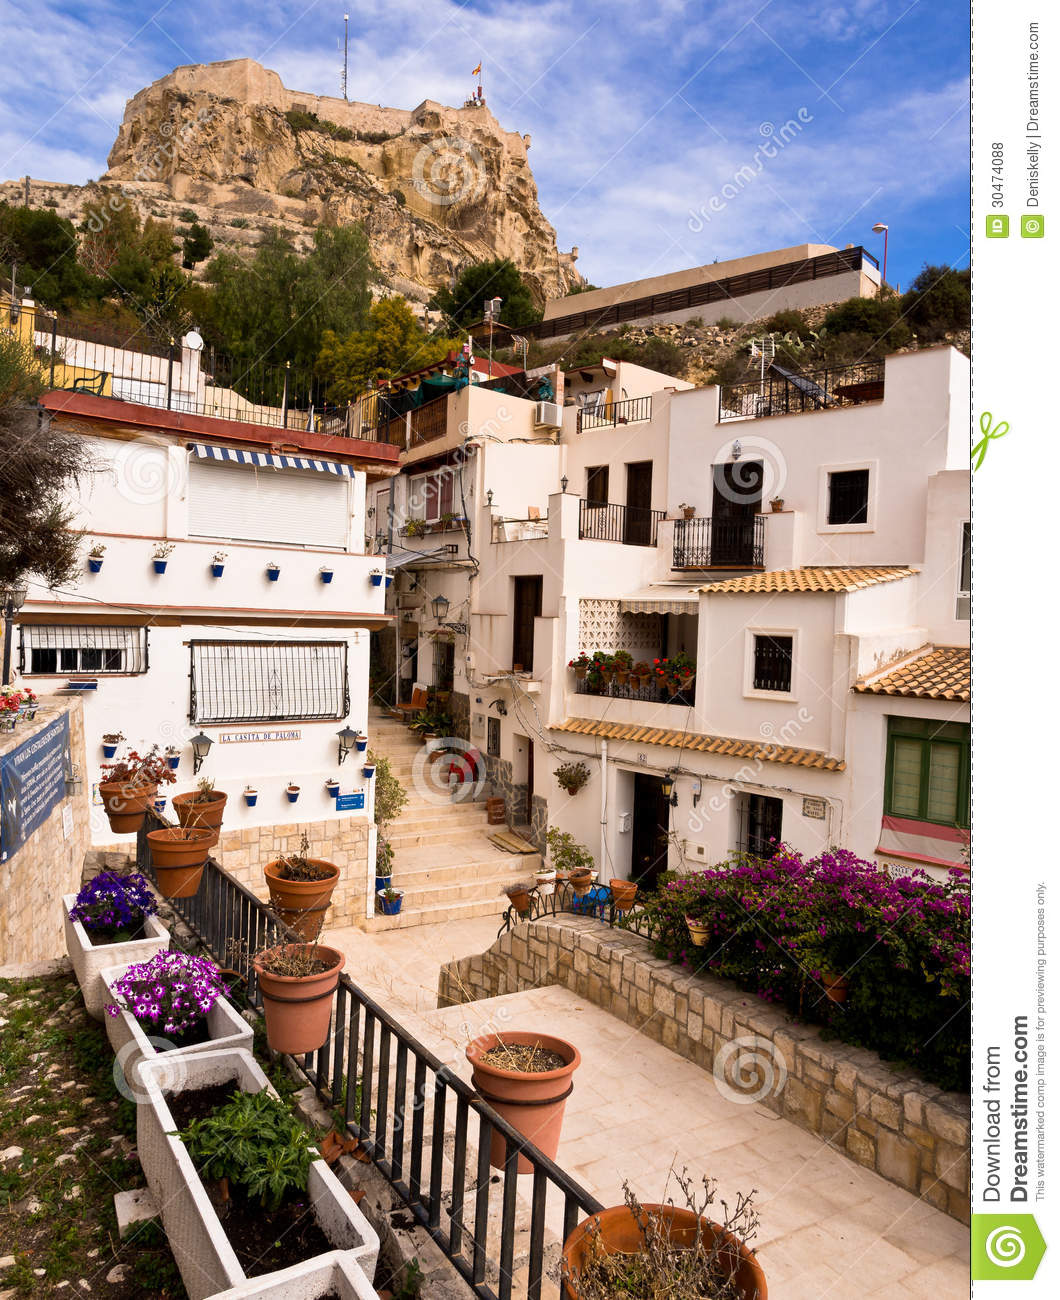 Old town and castle in alicante spain editorial stock for Tiny house santa barbara